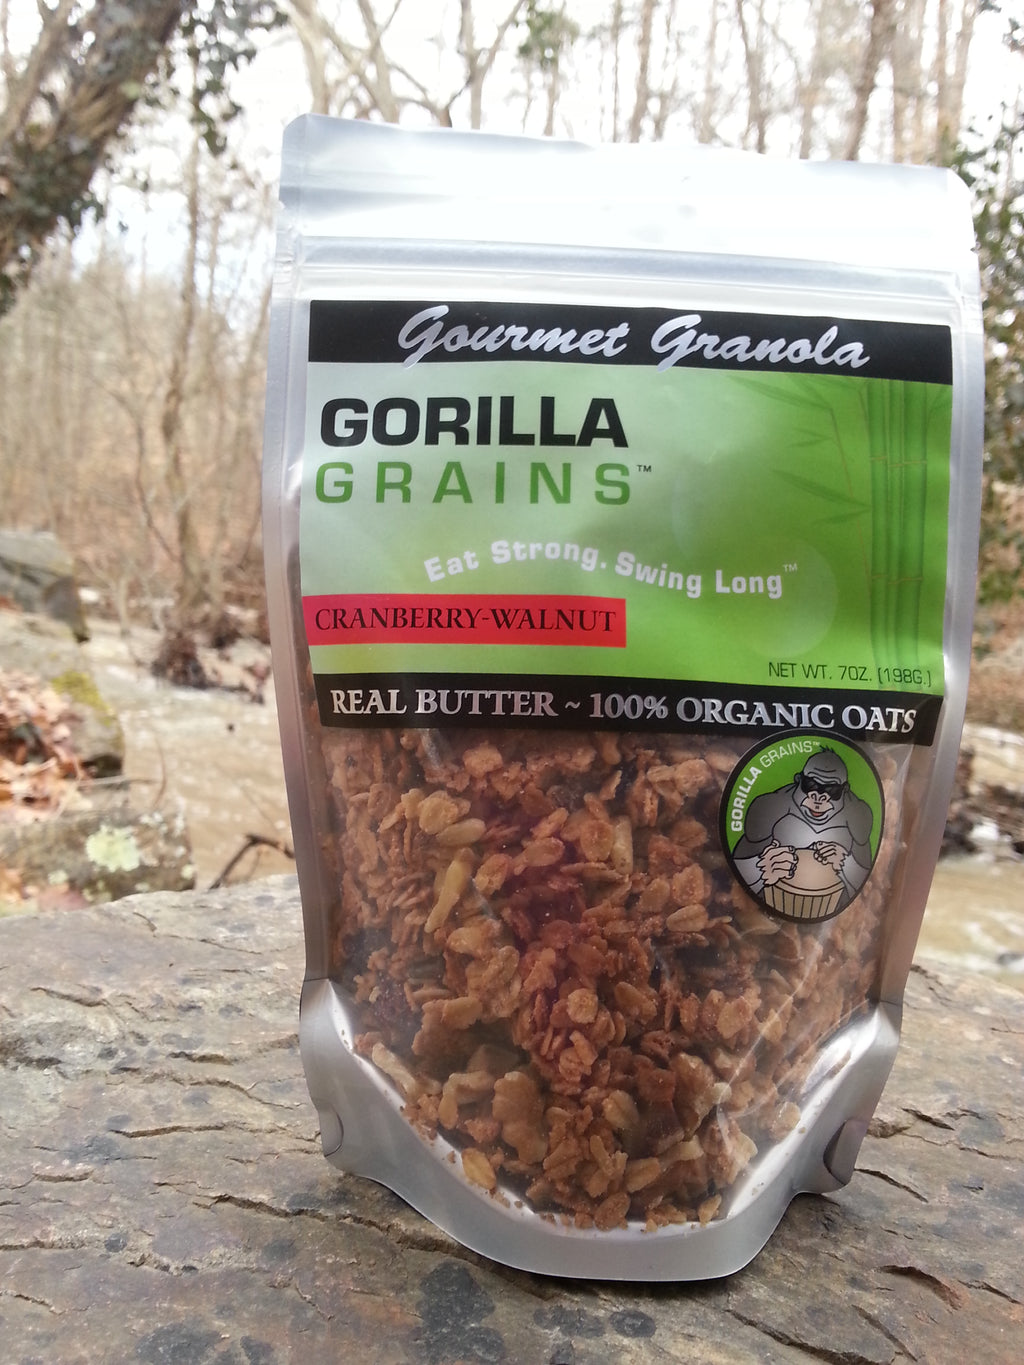 Gorilla Grains - Original with Cranberries and Walnuts